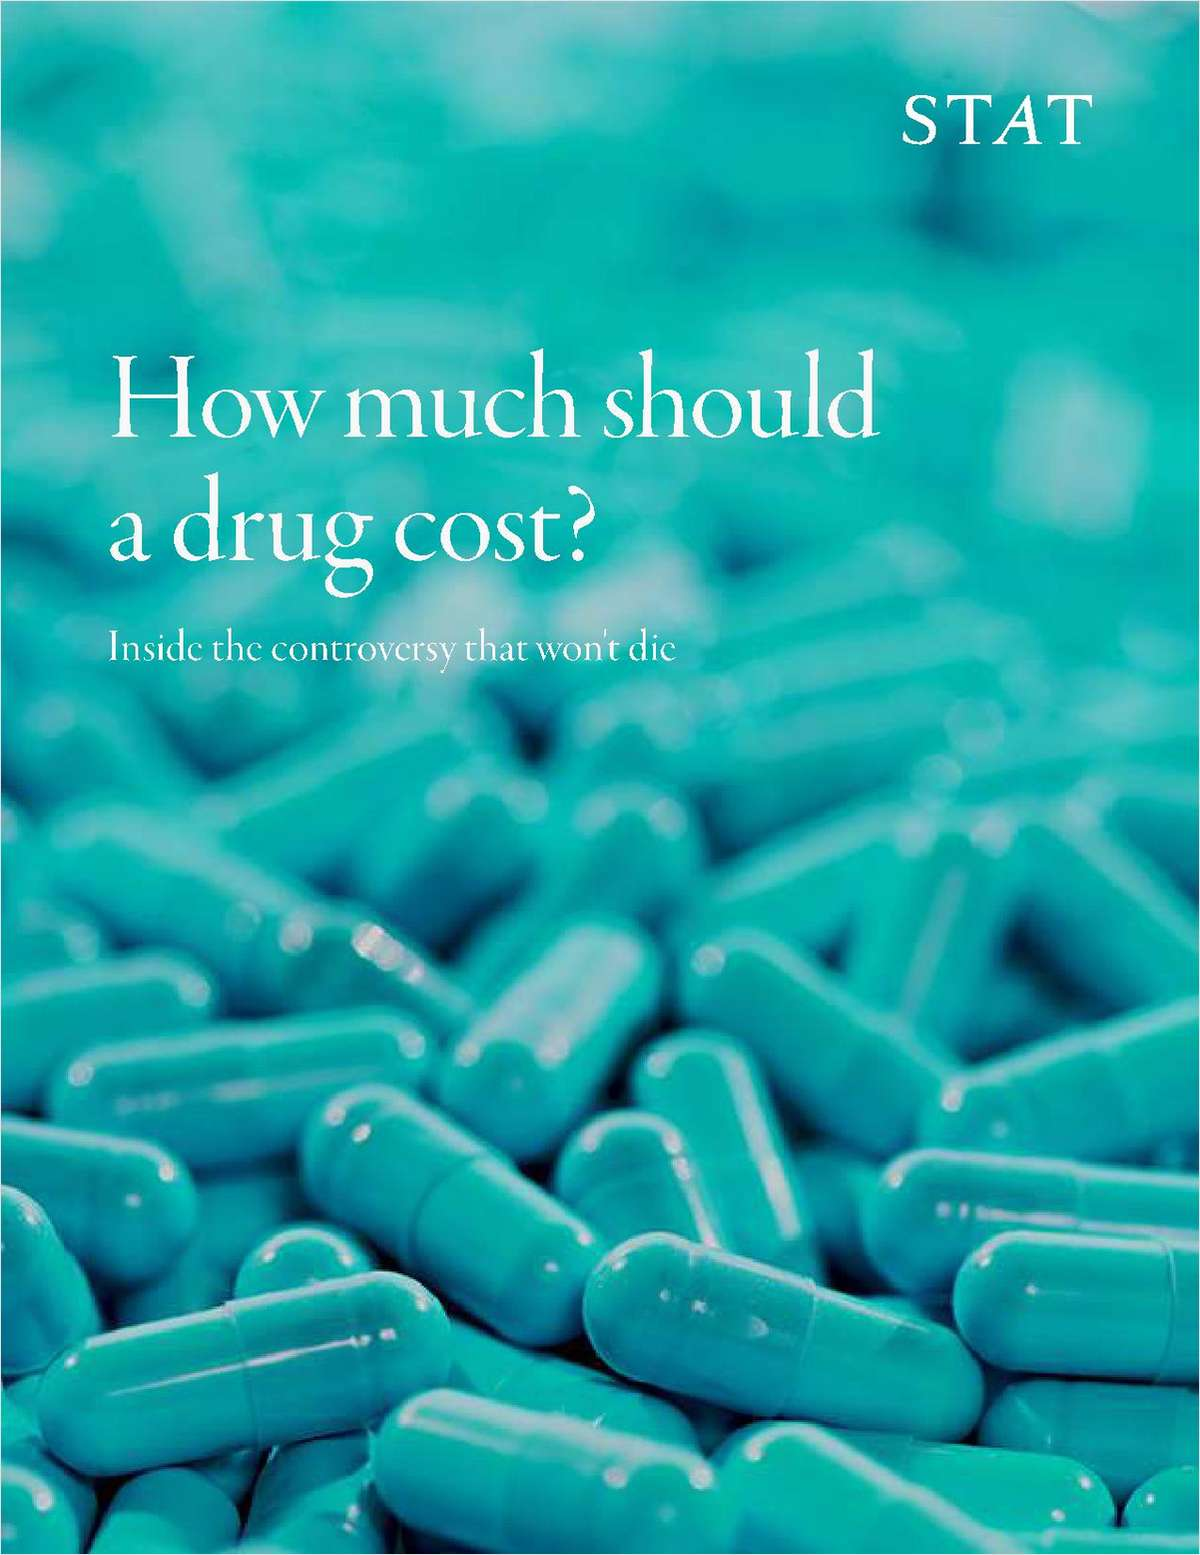 How much should a drug cost? Inside the controversy that won't die